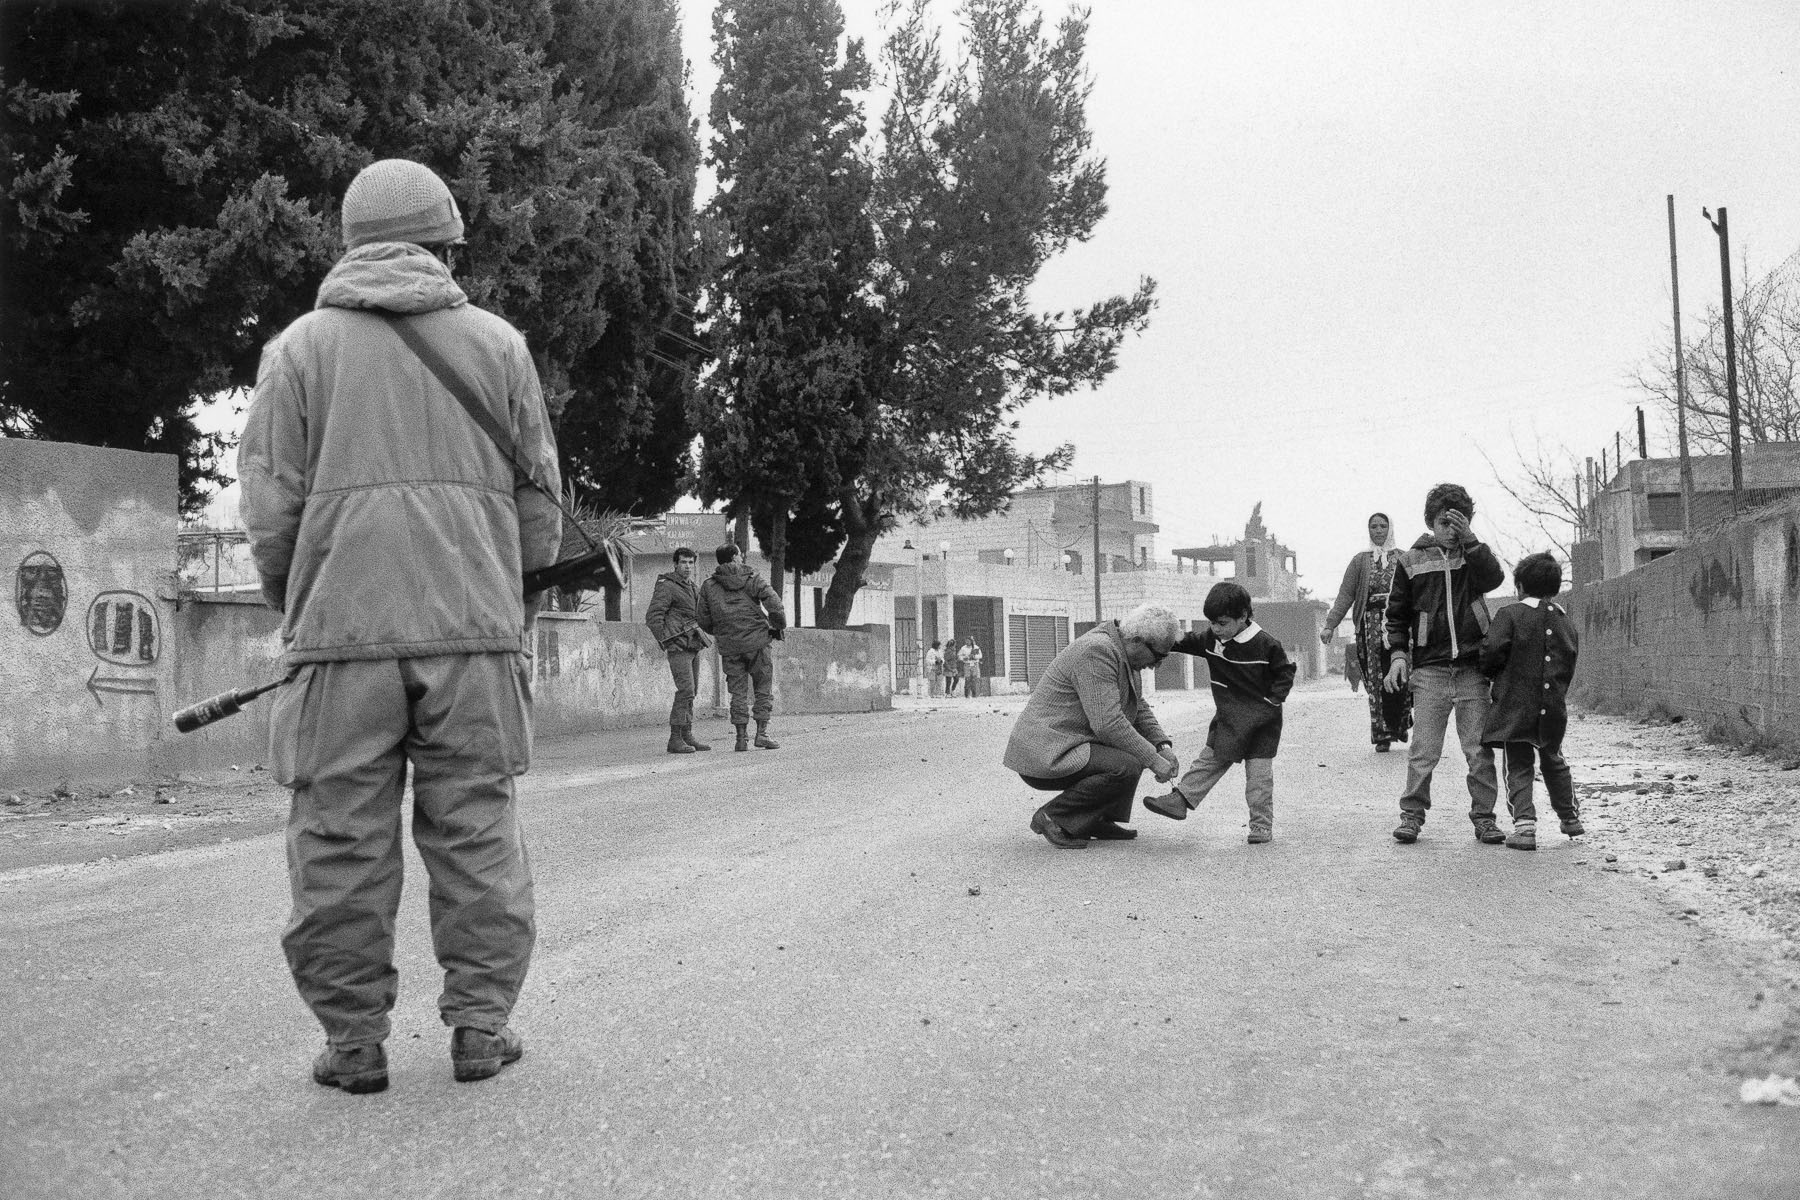 Israelian soldiers and Palestinians in January 1988